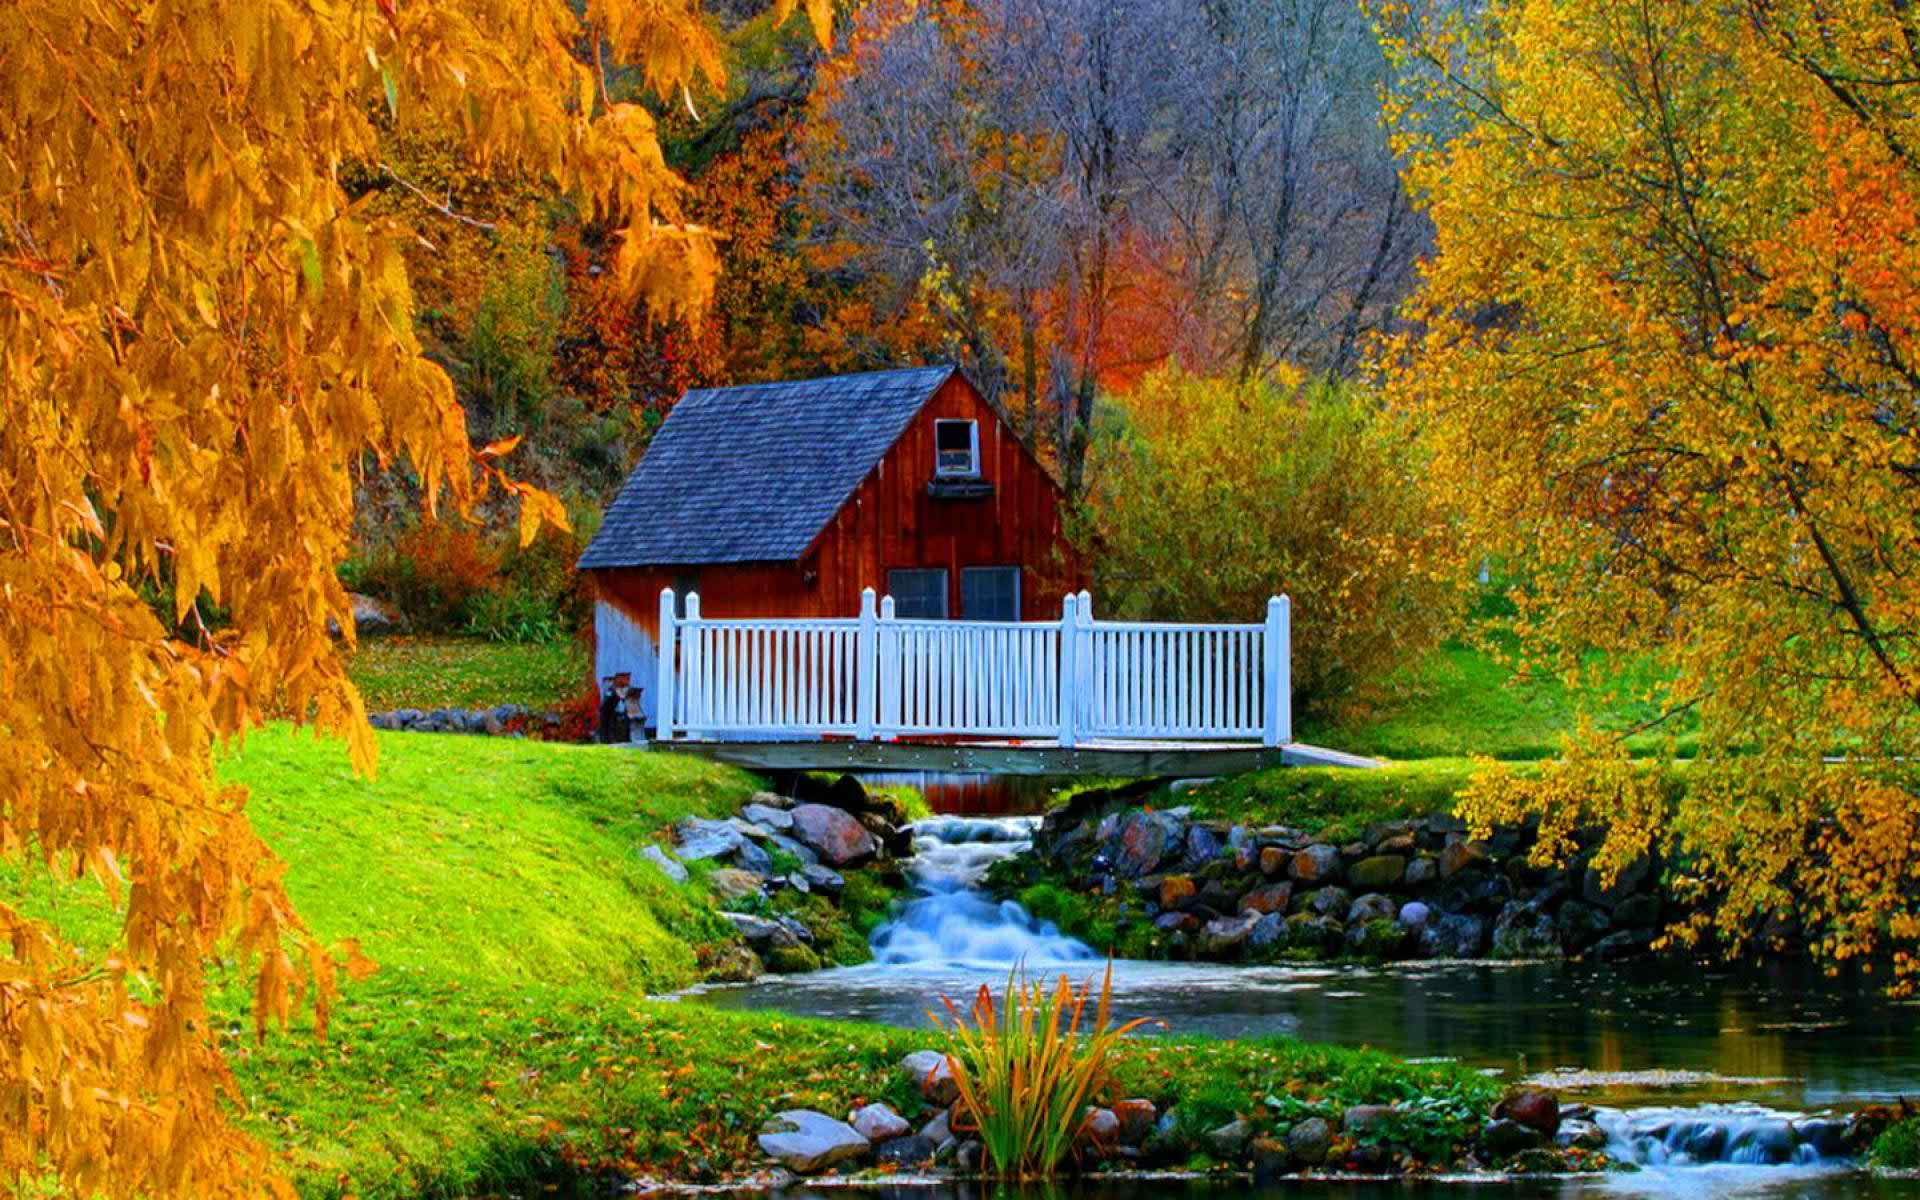 Fall Cabin Wallpaper House In Autumn Forest Image Id 4541 Image Abyss